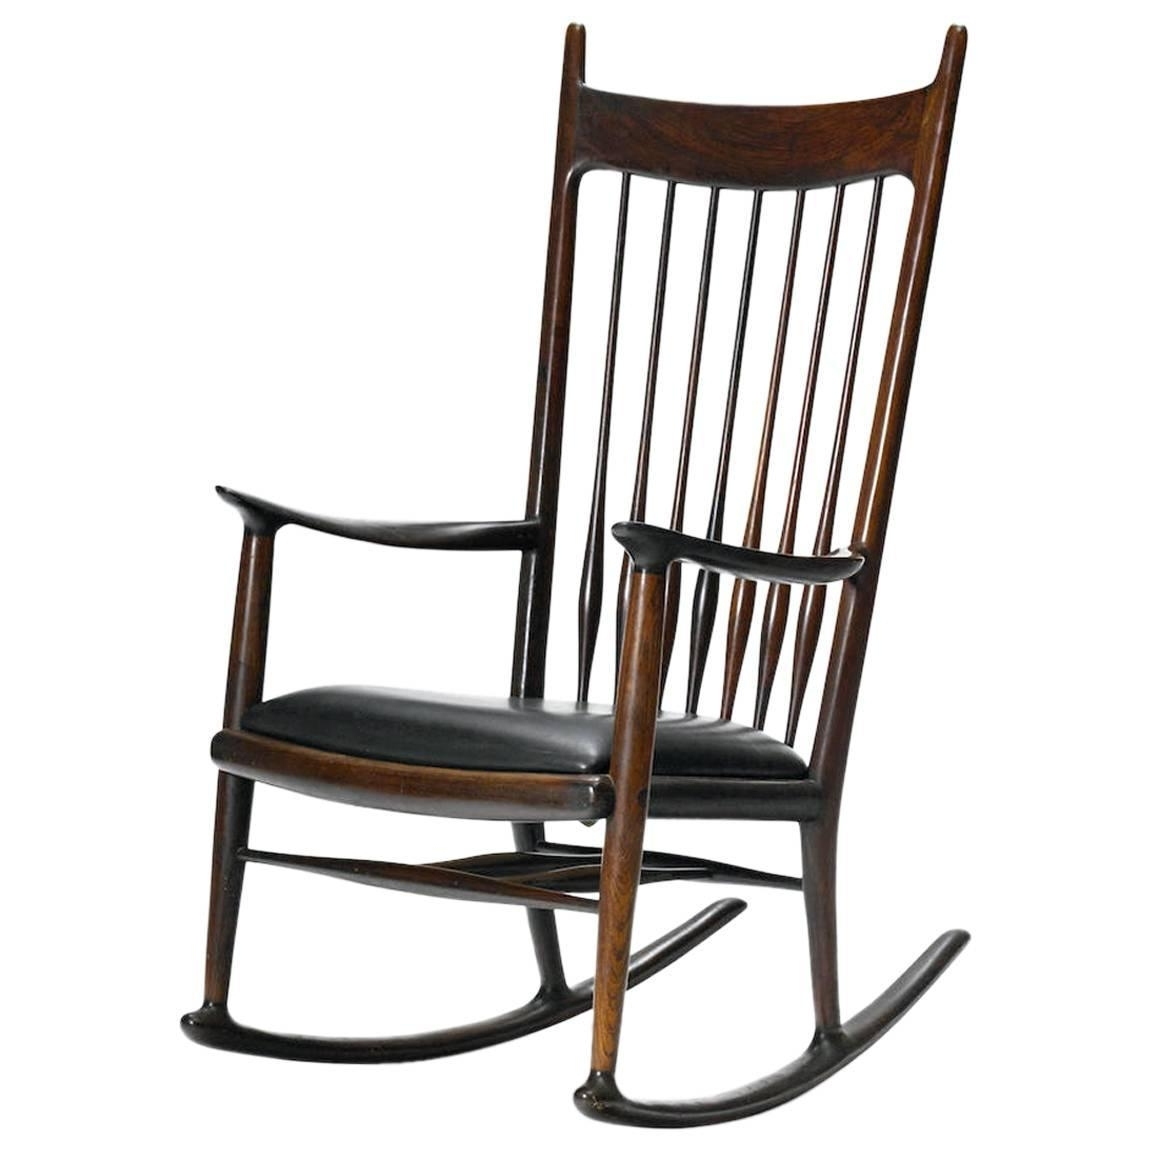 Rare Early Rosewood Rocking Chairsam Maloof For Sale At 1Stdibs Regarding Most Up To Date Rocking Chairs At Sam's Club (View 10 of 15)